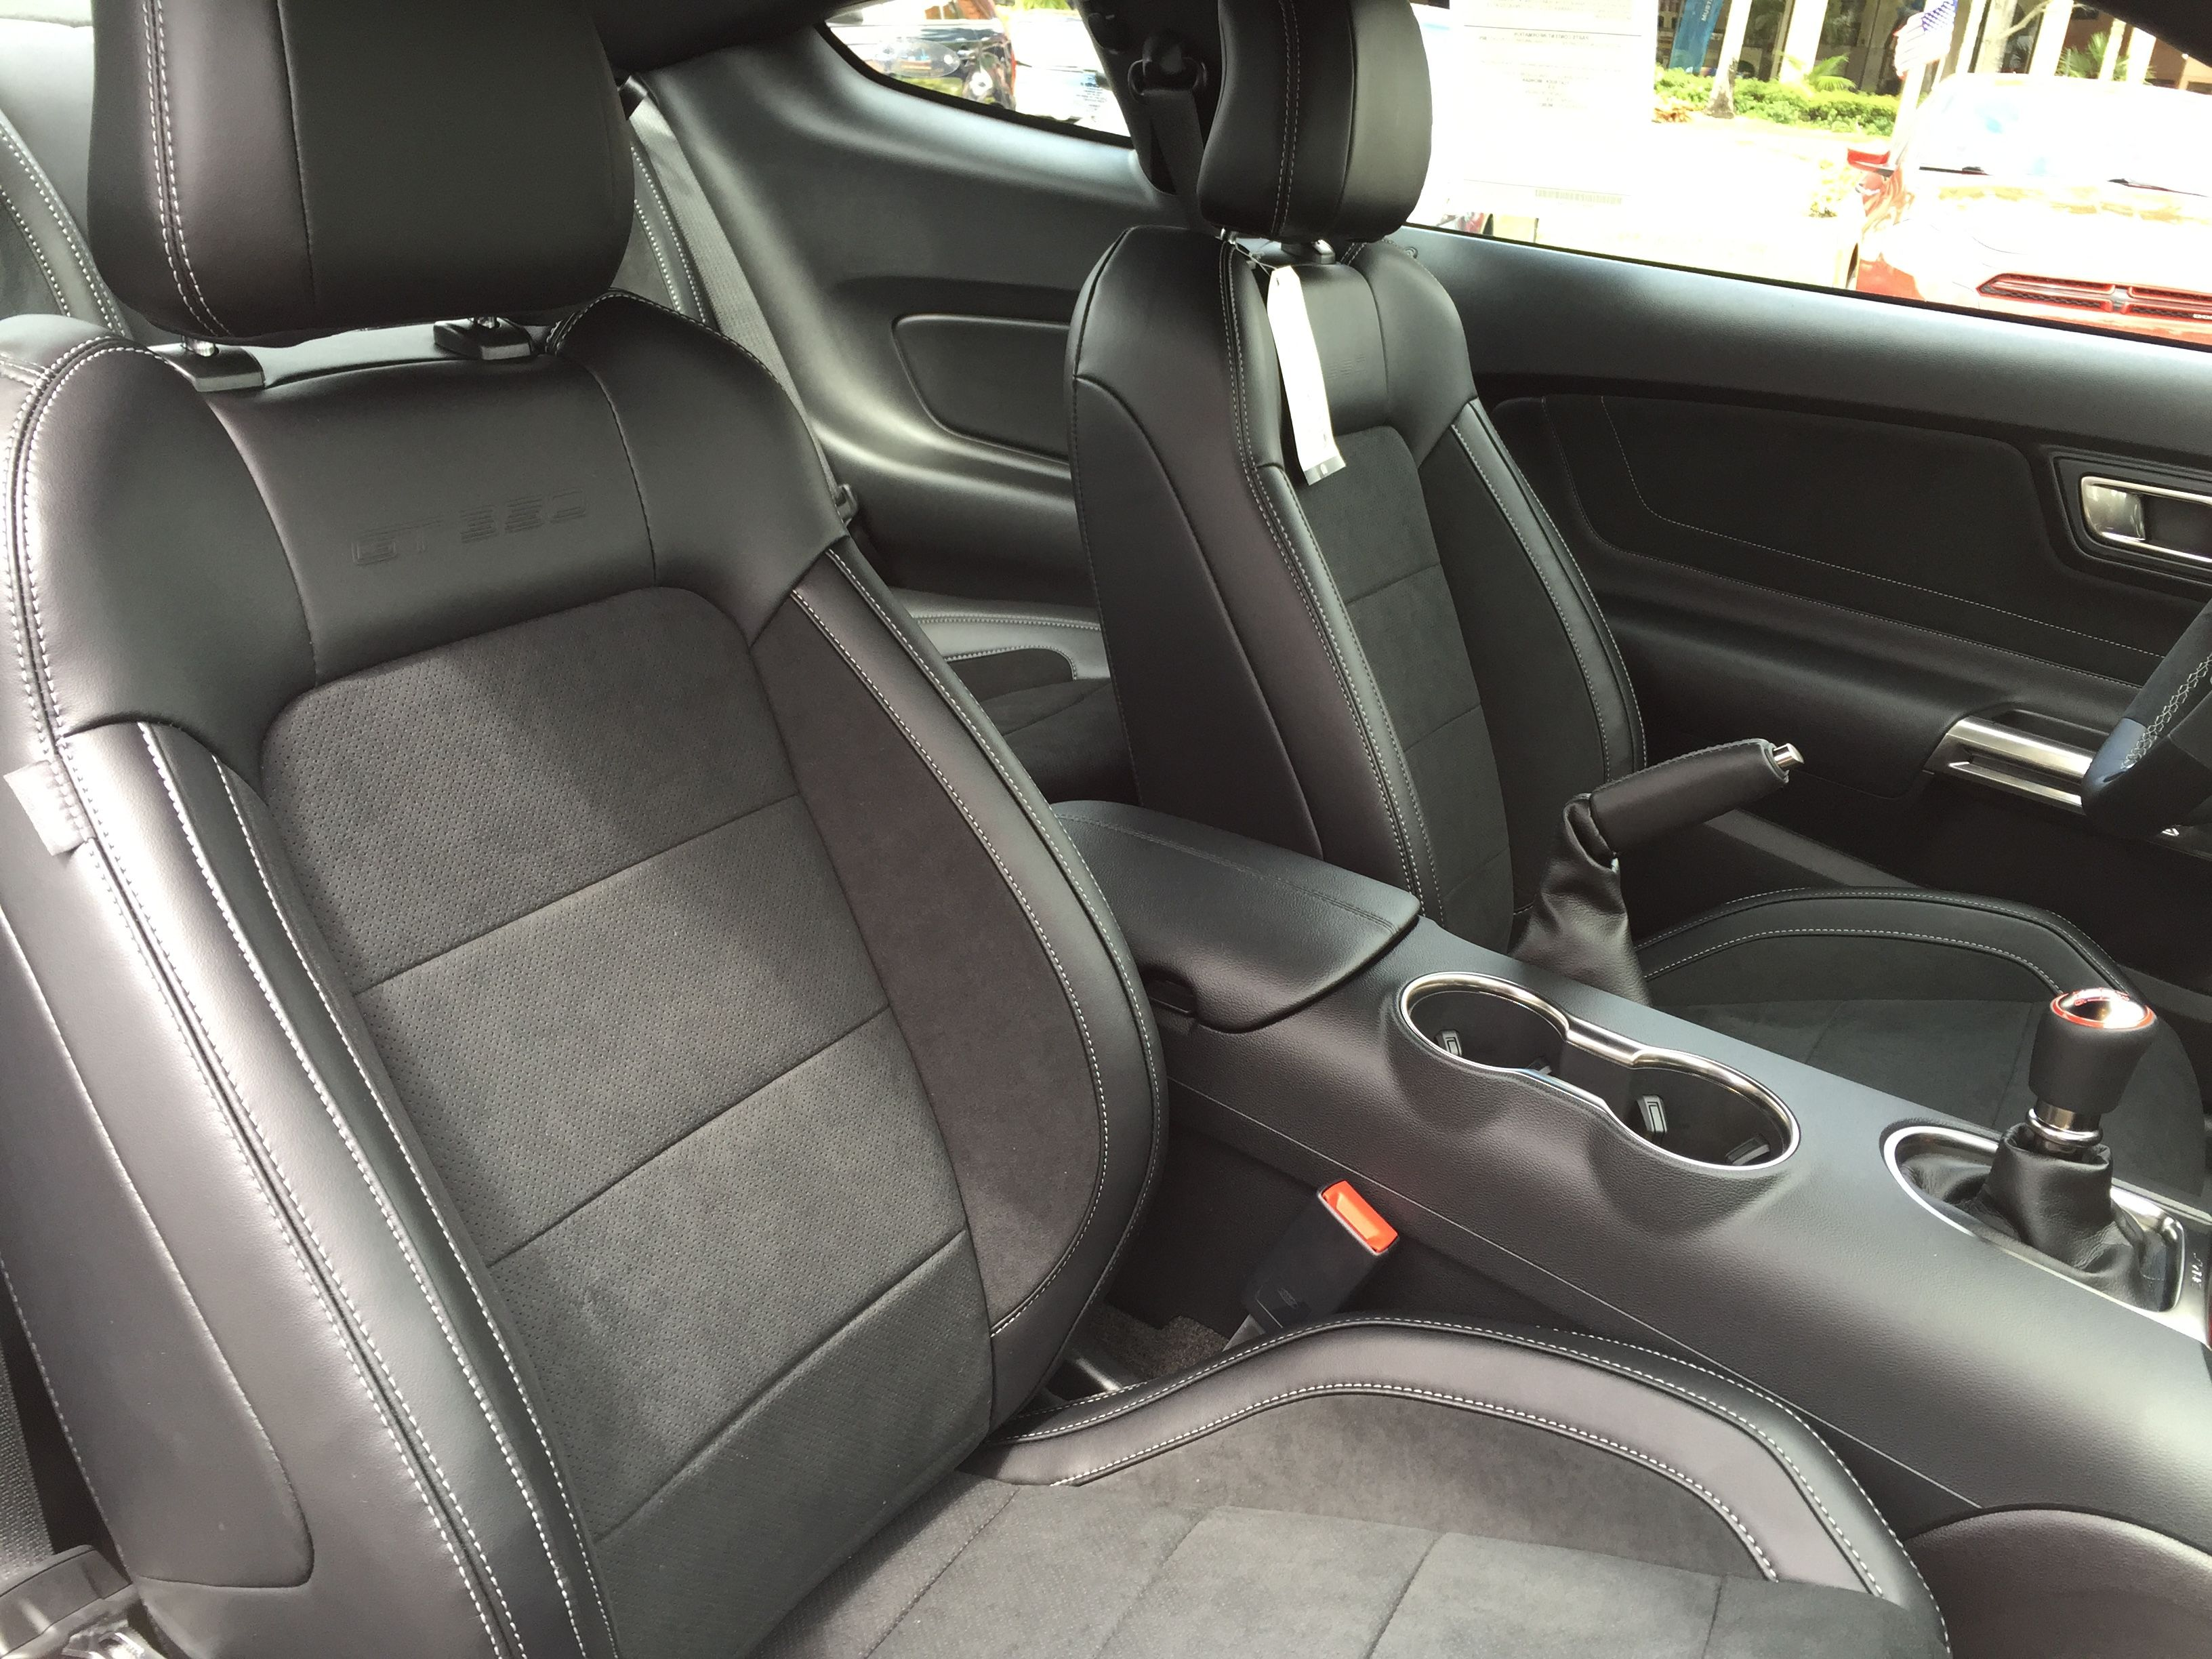 2016 Ford shelby Mustang GT 350 seats